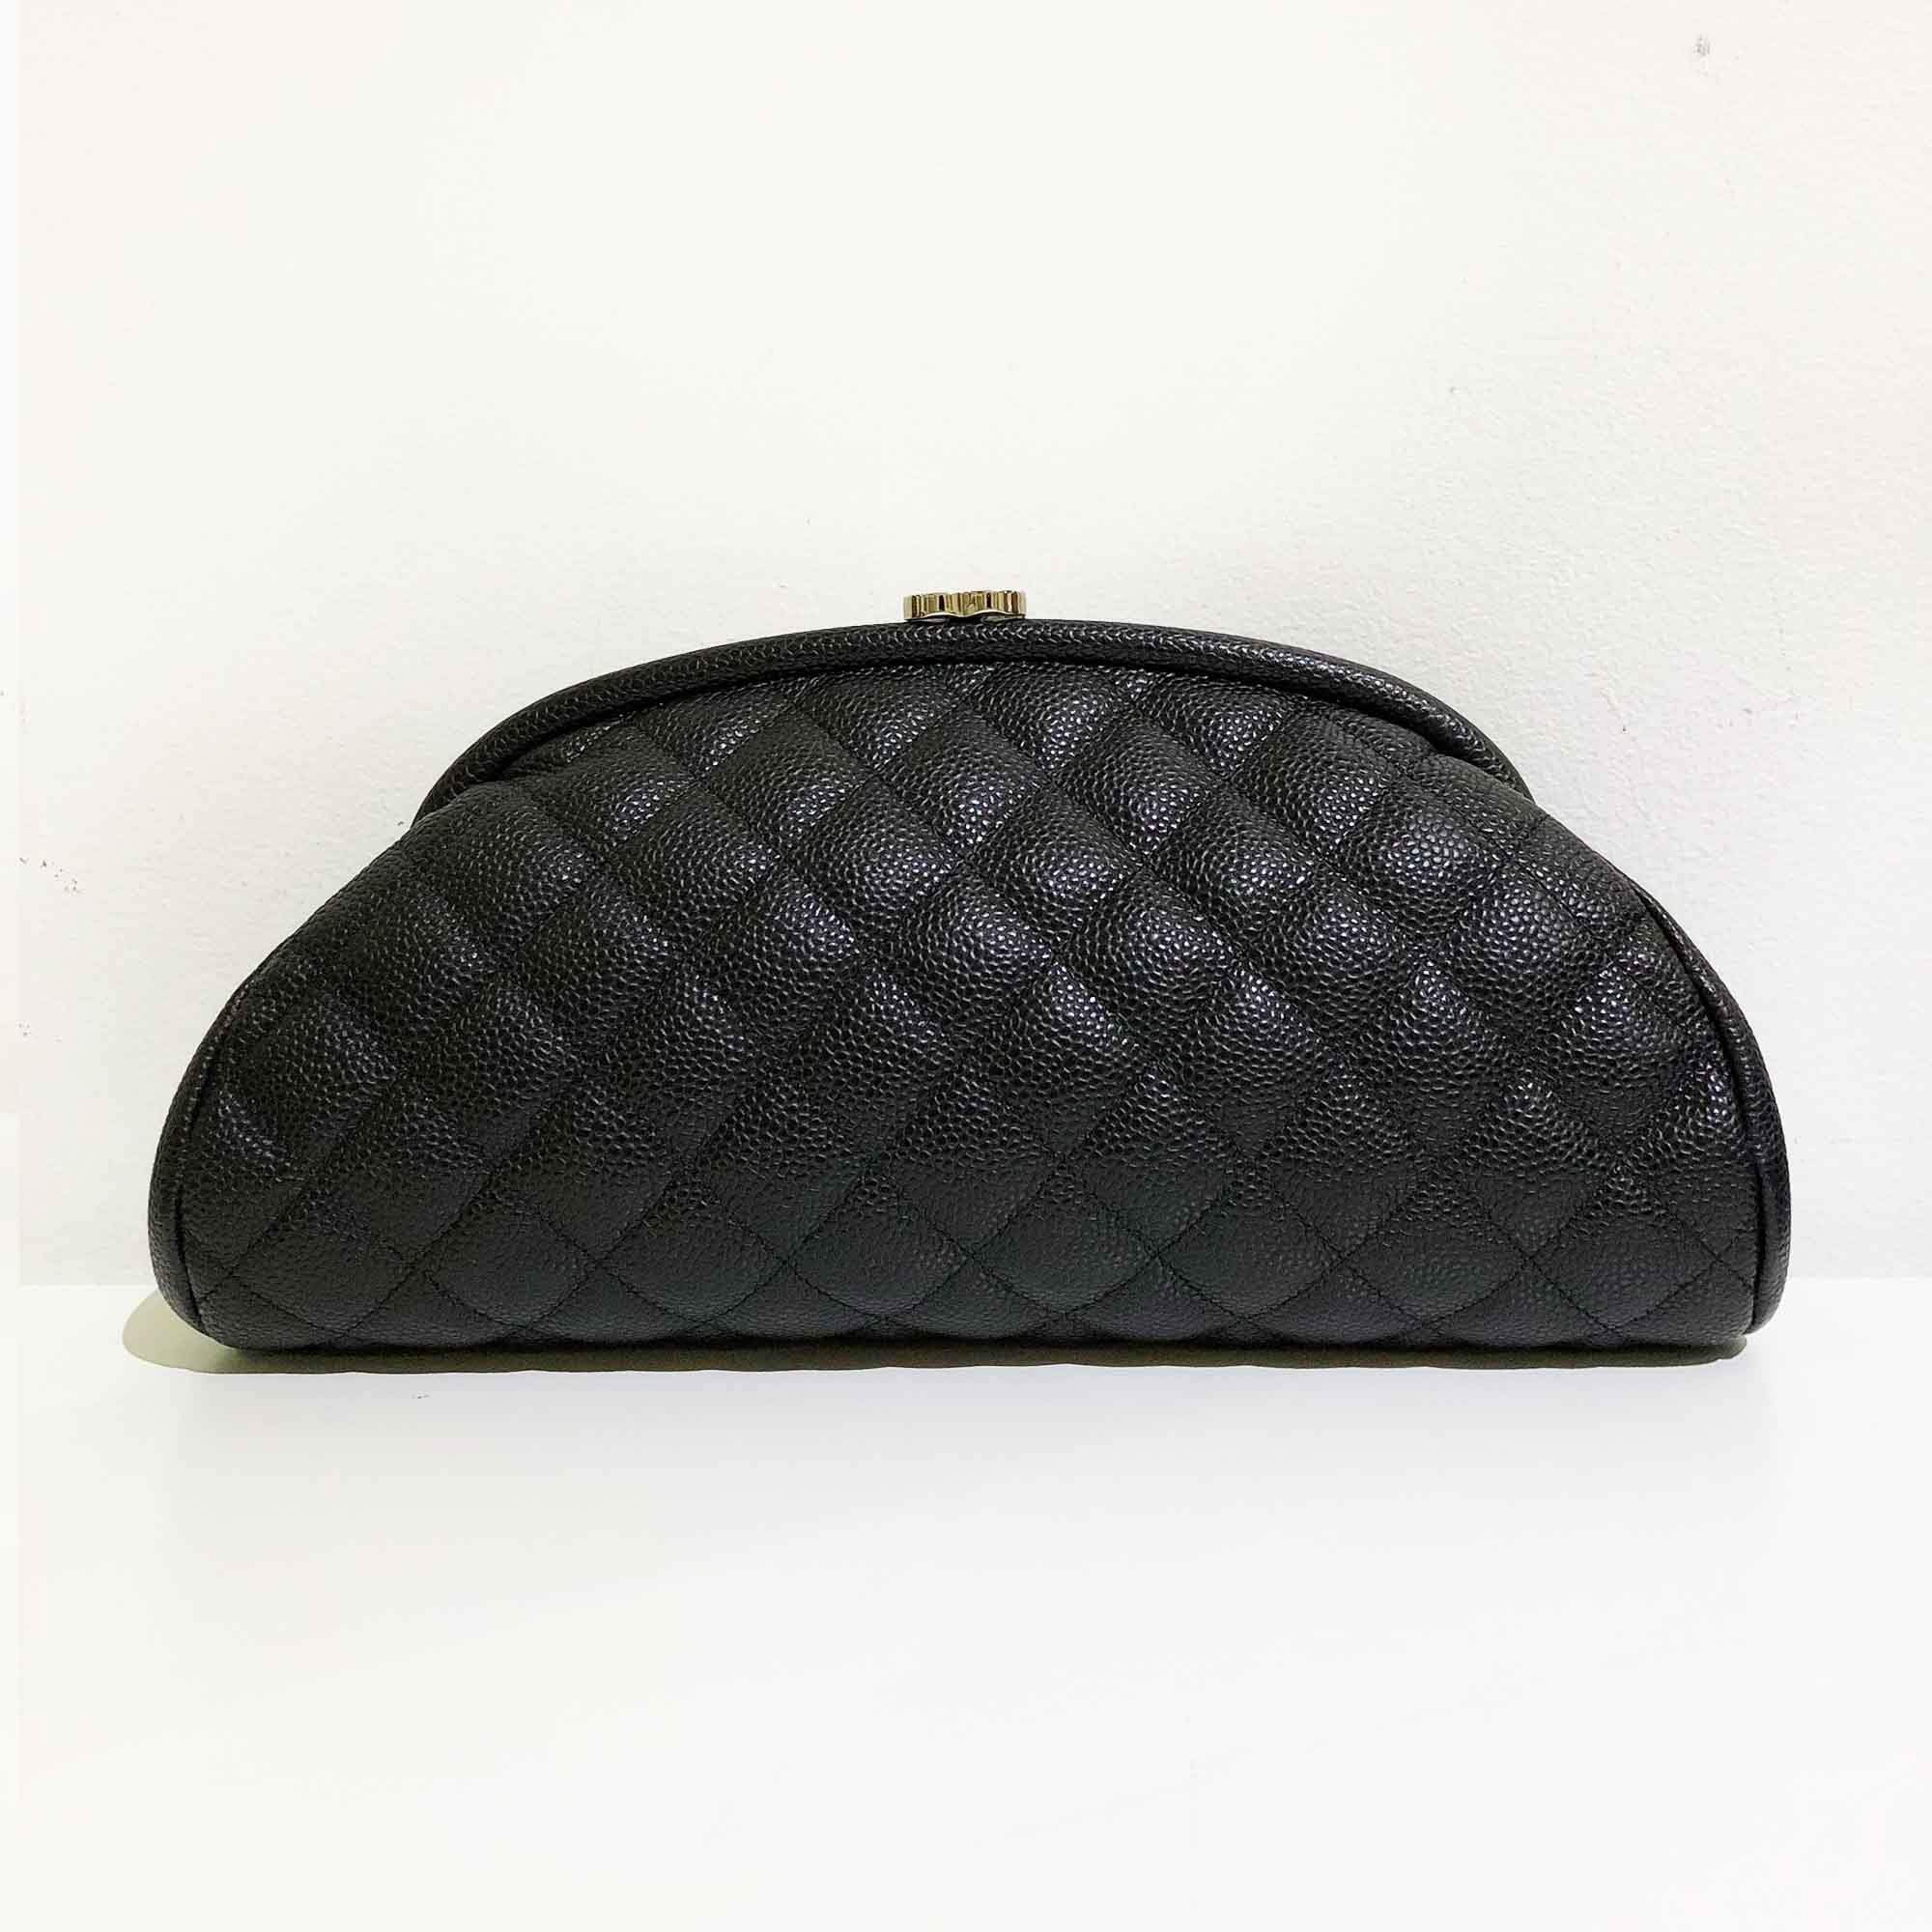 Chanel Black Caviar Leather Timeless Clutch Bag